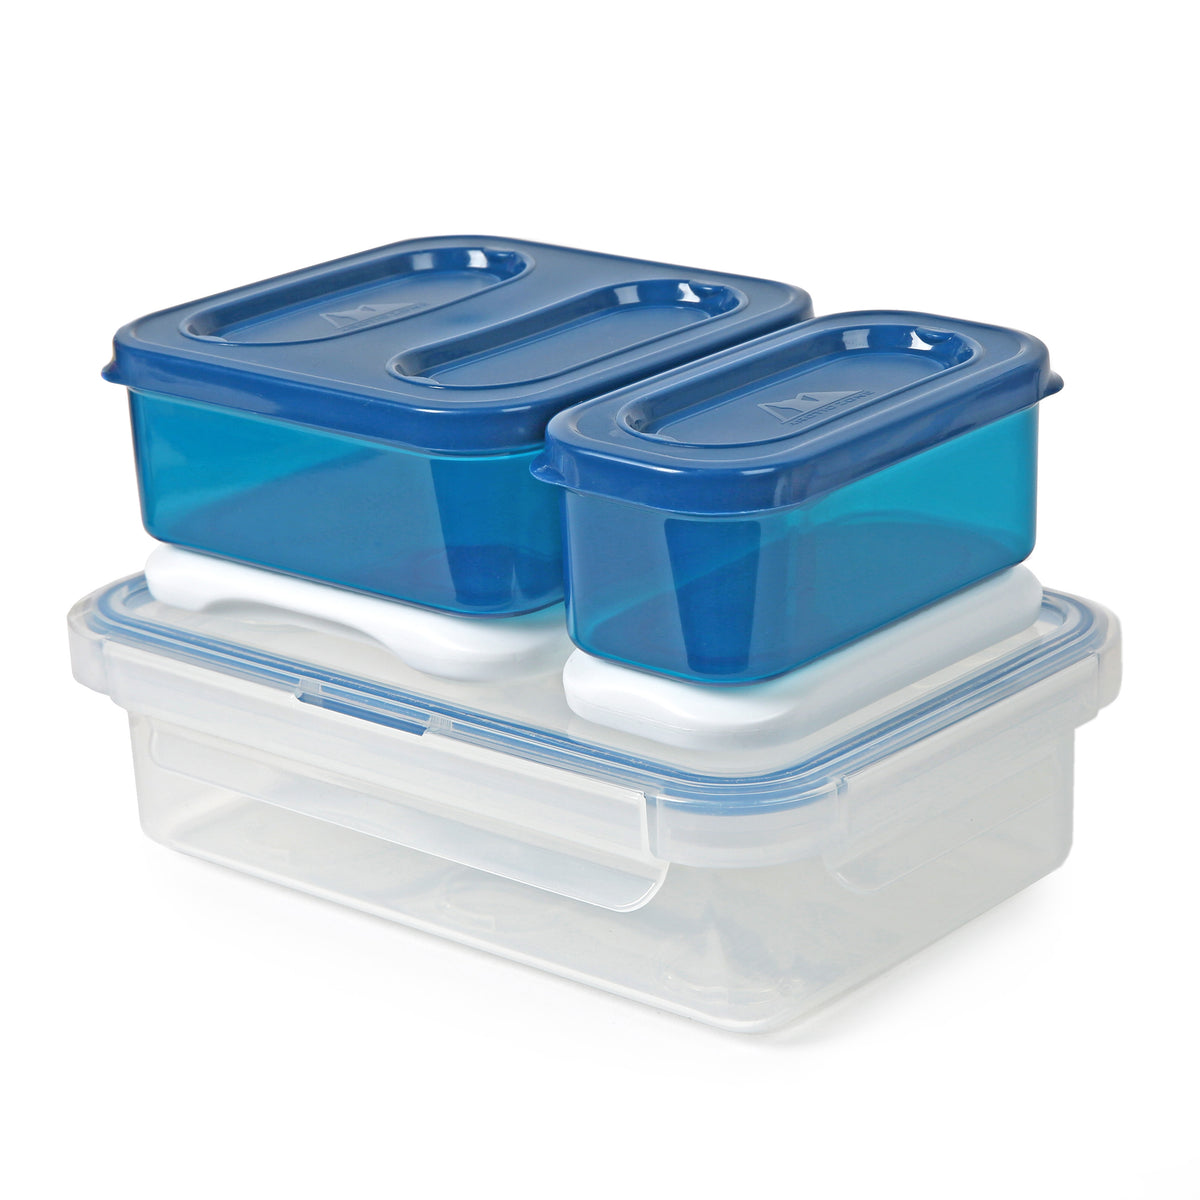 High Performance Meal Prep Day Pack - Blue - 8 piece container set